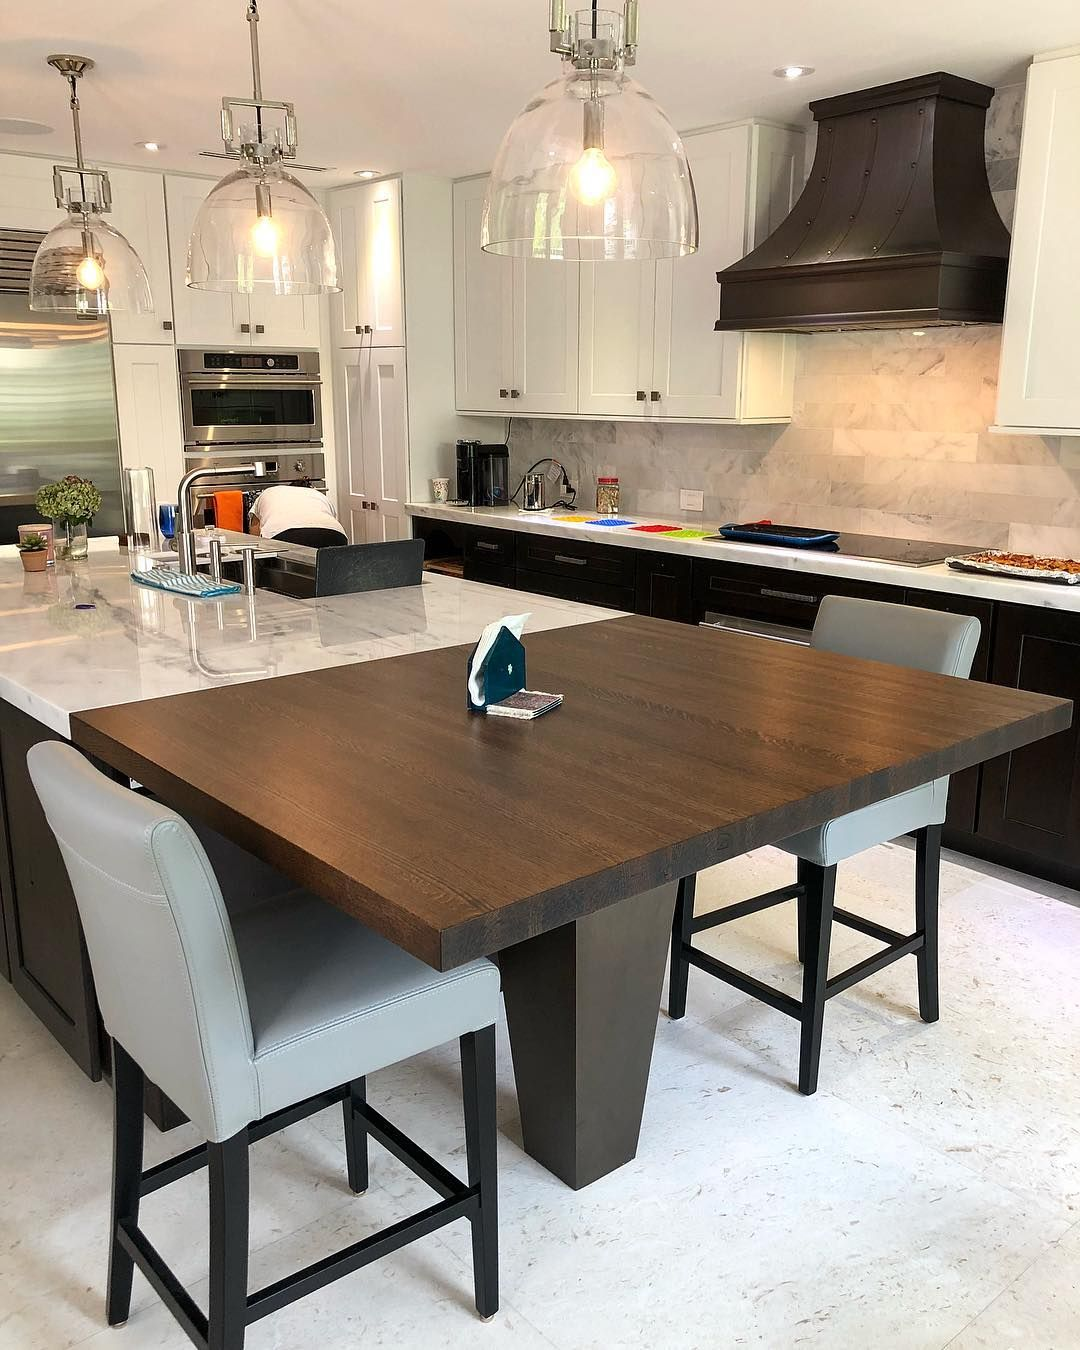 Good Morning Here S Another Beautiful Kitchen Island Extension We Built With Solid White Oak And A Cu Custom Furniture Beautiful Kitchens Kitchen Inspirations